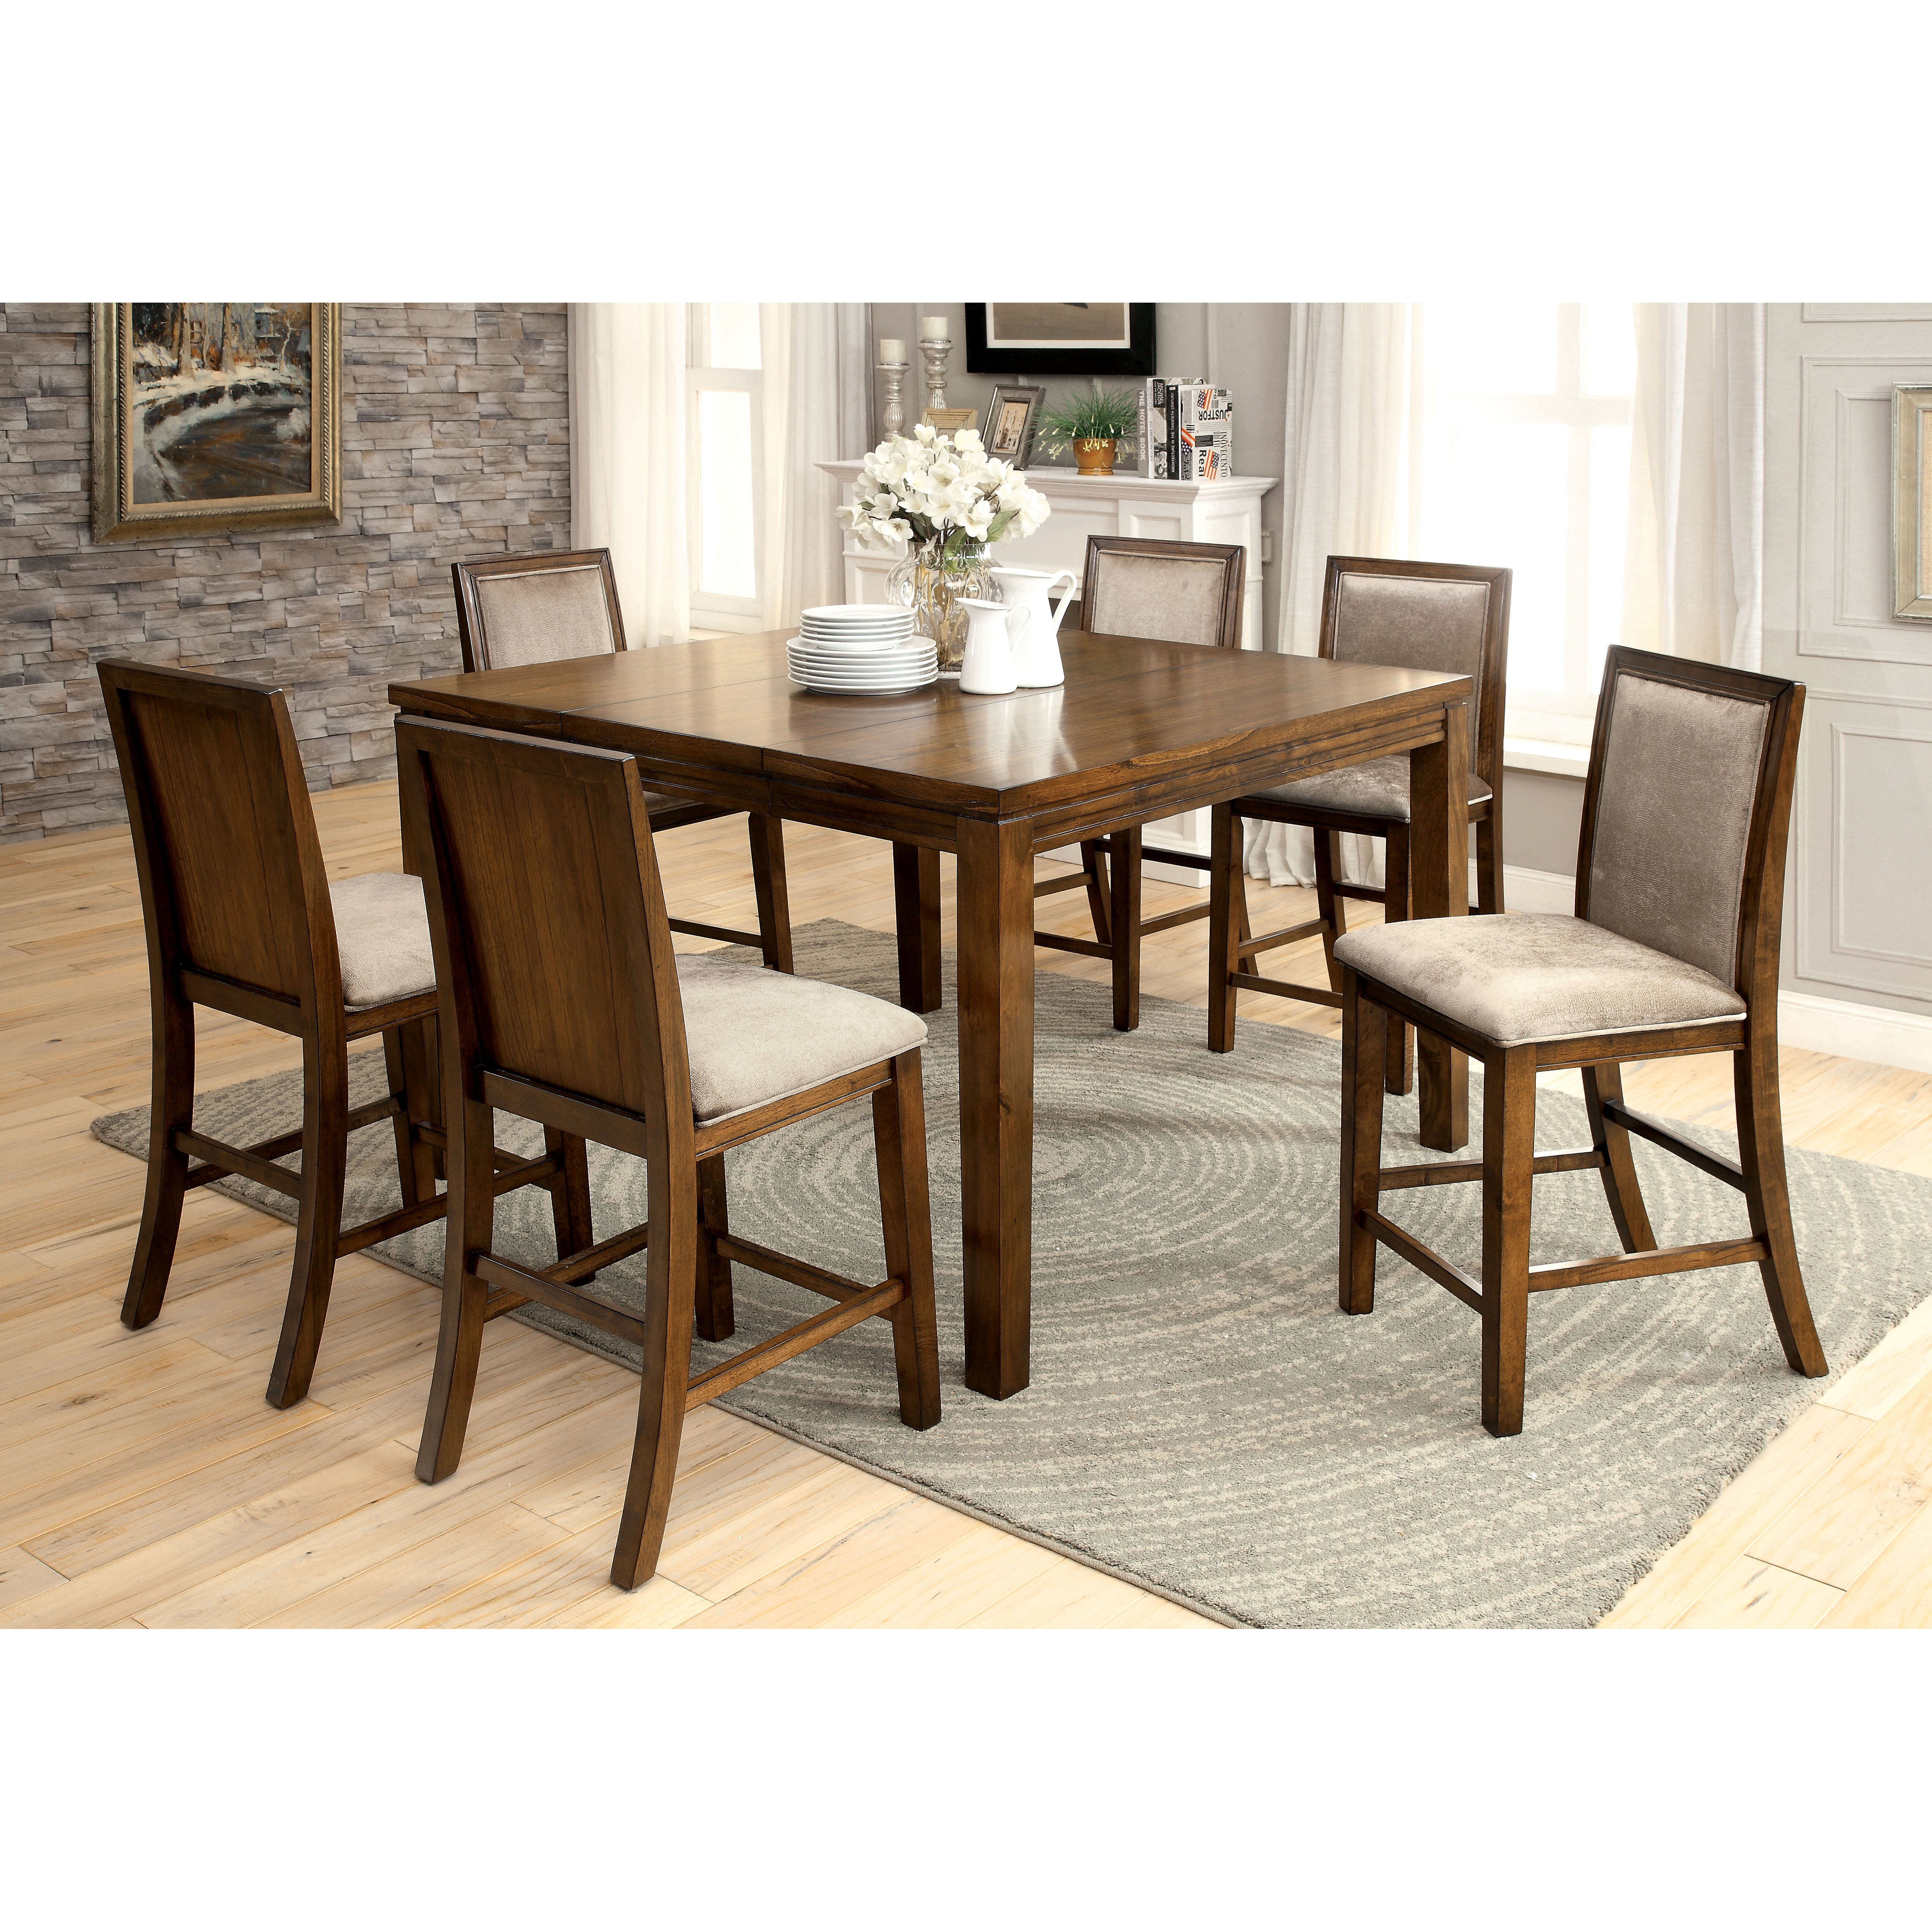 Darby home co audubon counter height extendable dining for Counter height extendable dining table